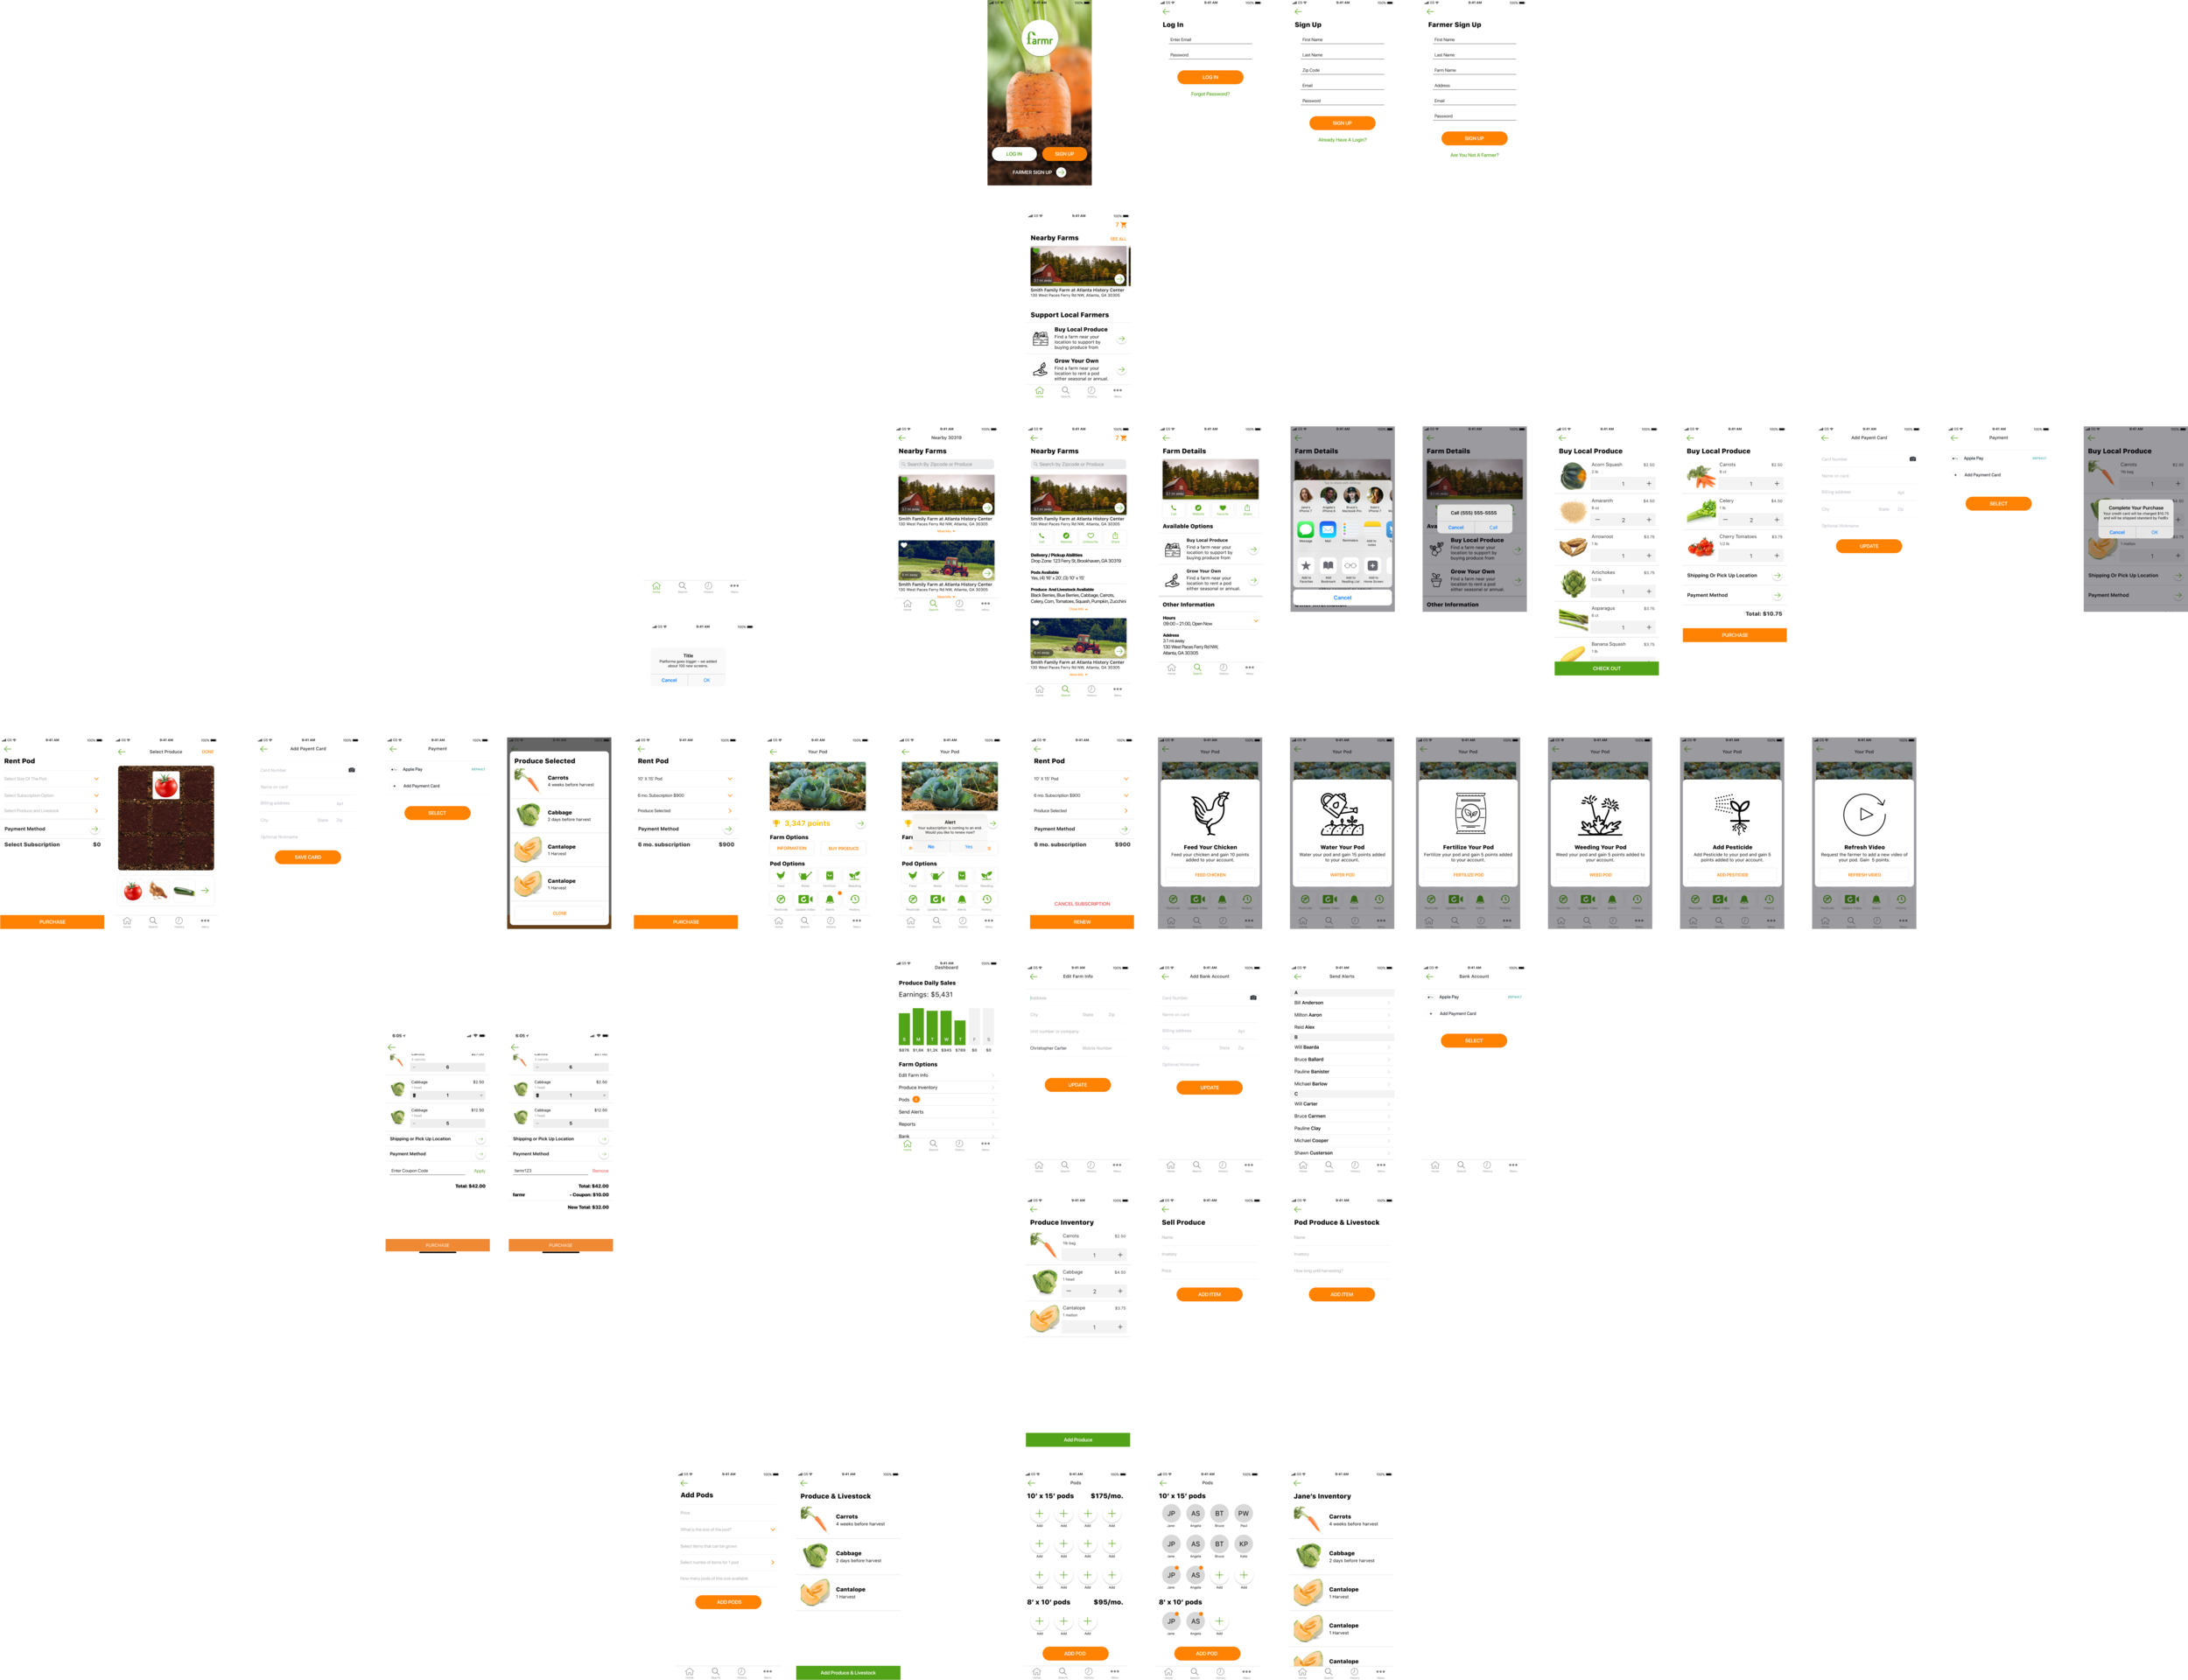 All of the screens we needed for the prototype to gather user feedback.